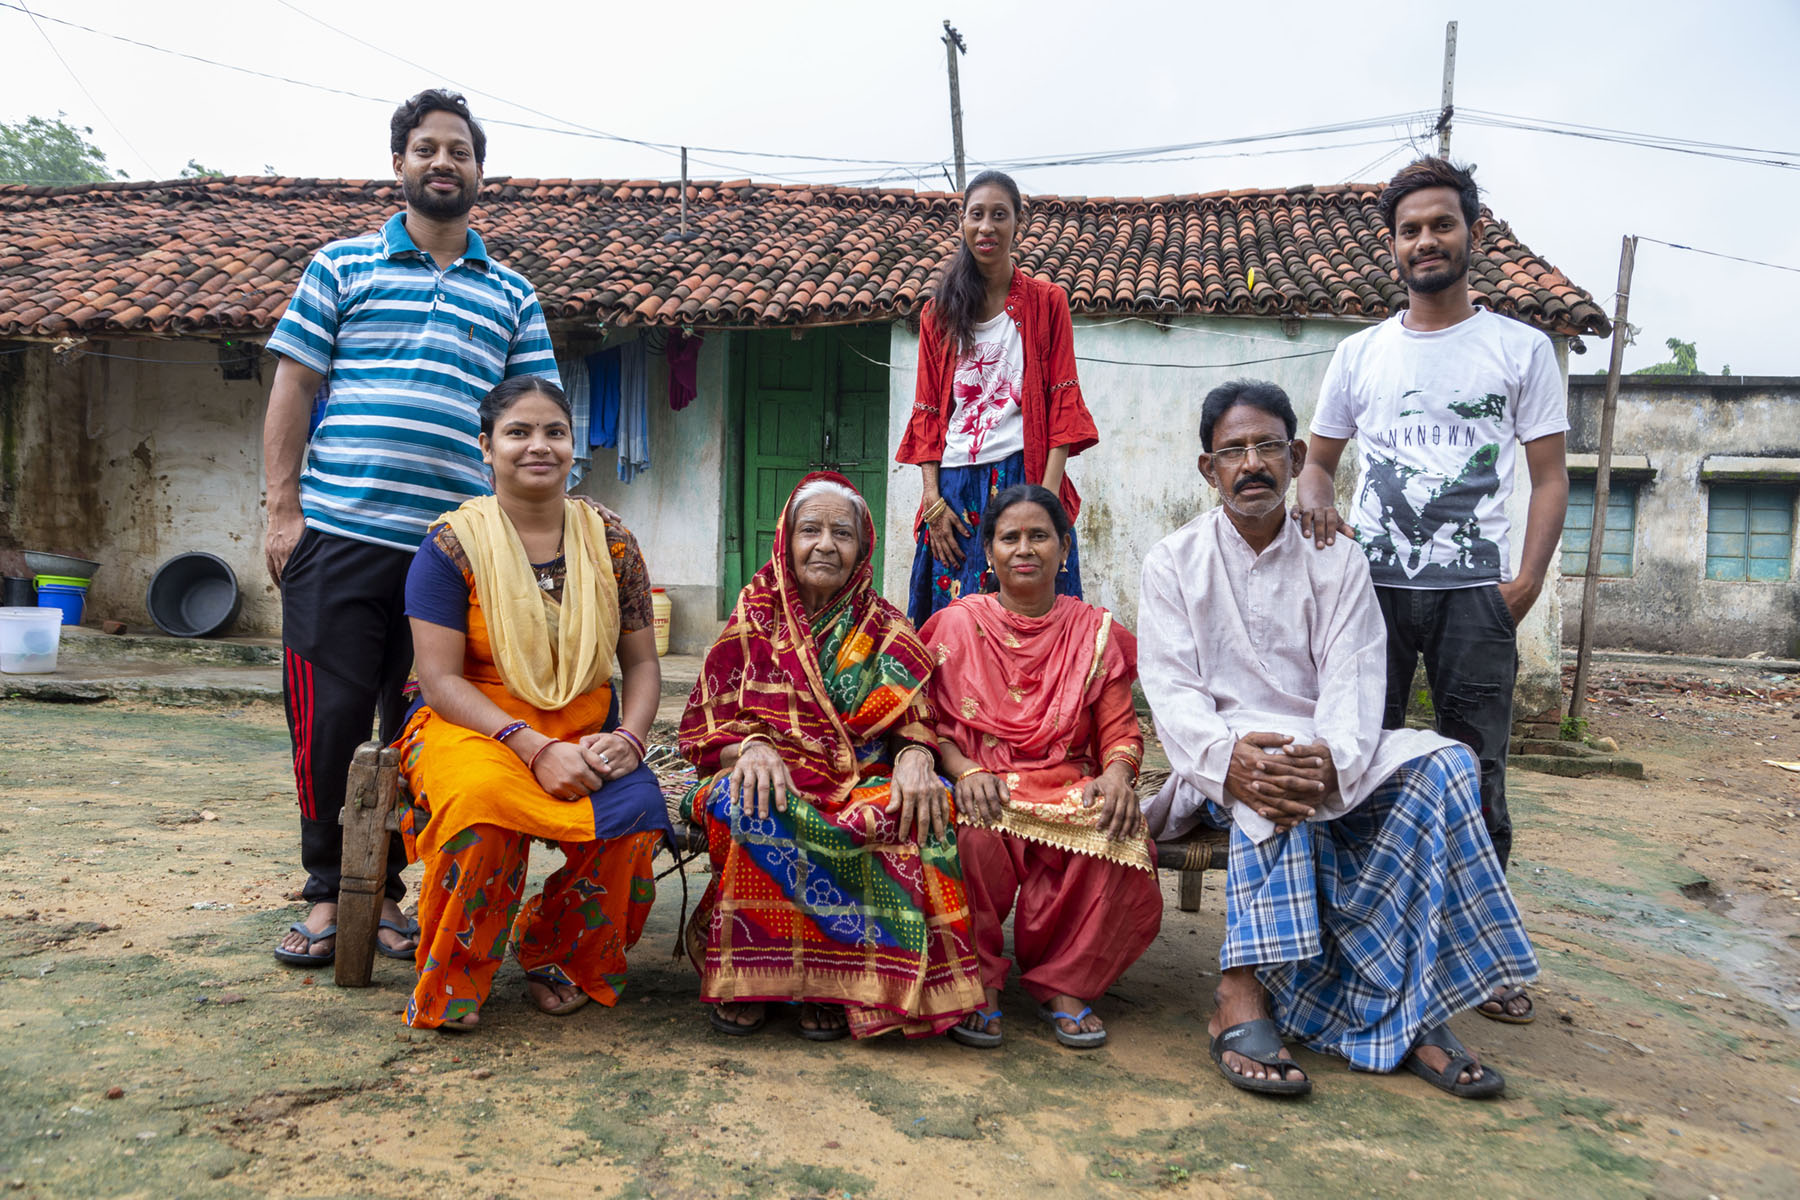 Roji poses with her family. Sitting on a wooden bench from left to right: Sister-in-law Suraiya Parween (24), grandmother Salma Bibi, mother Mariyam Nisha (54) and father Anwar Saudagar (60). Behind them, Roji stands in the centre between her brothers Mohammed Jabed (25) at extreme left and Mohammed Jahid (20) at the extreme right. Suraiya wears an orange and violet pattern salwar kameez and cream dupatta. Salma wears a sari with a red, green and violet design; the pallu is draped over her white hair. Mariyam is in a rose-red salwar-kameez. Anwar wears a blue and black checked lungi and a pinkish white kurta. Jabed is in a collar T-shirt with horizontal blue and white stripes and navy blue track pants. Rosi has on a front-open red shirt with bell-shaped three-fourth sleeves worn over a short, white T-shirt with a red flower on the front. She wears a navy blue skirt decorated with red and yellow flowers. Jahid wears black trousers paired with a white T-shirt.